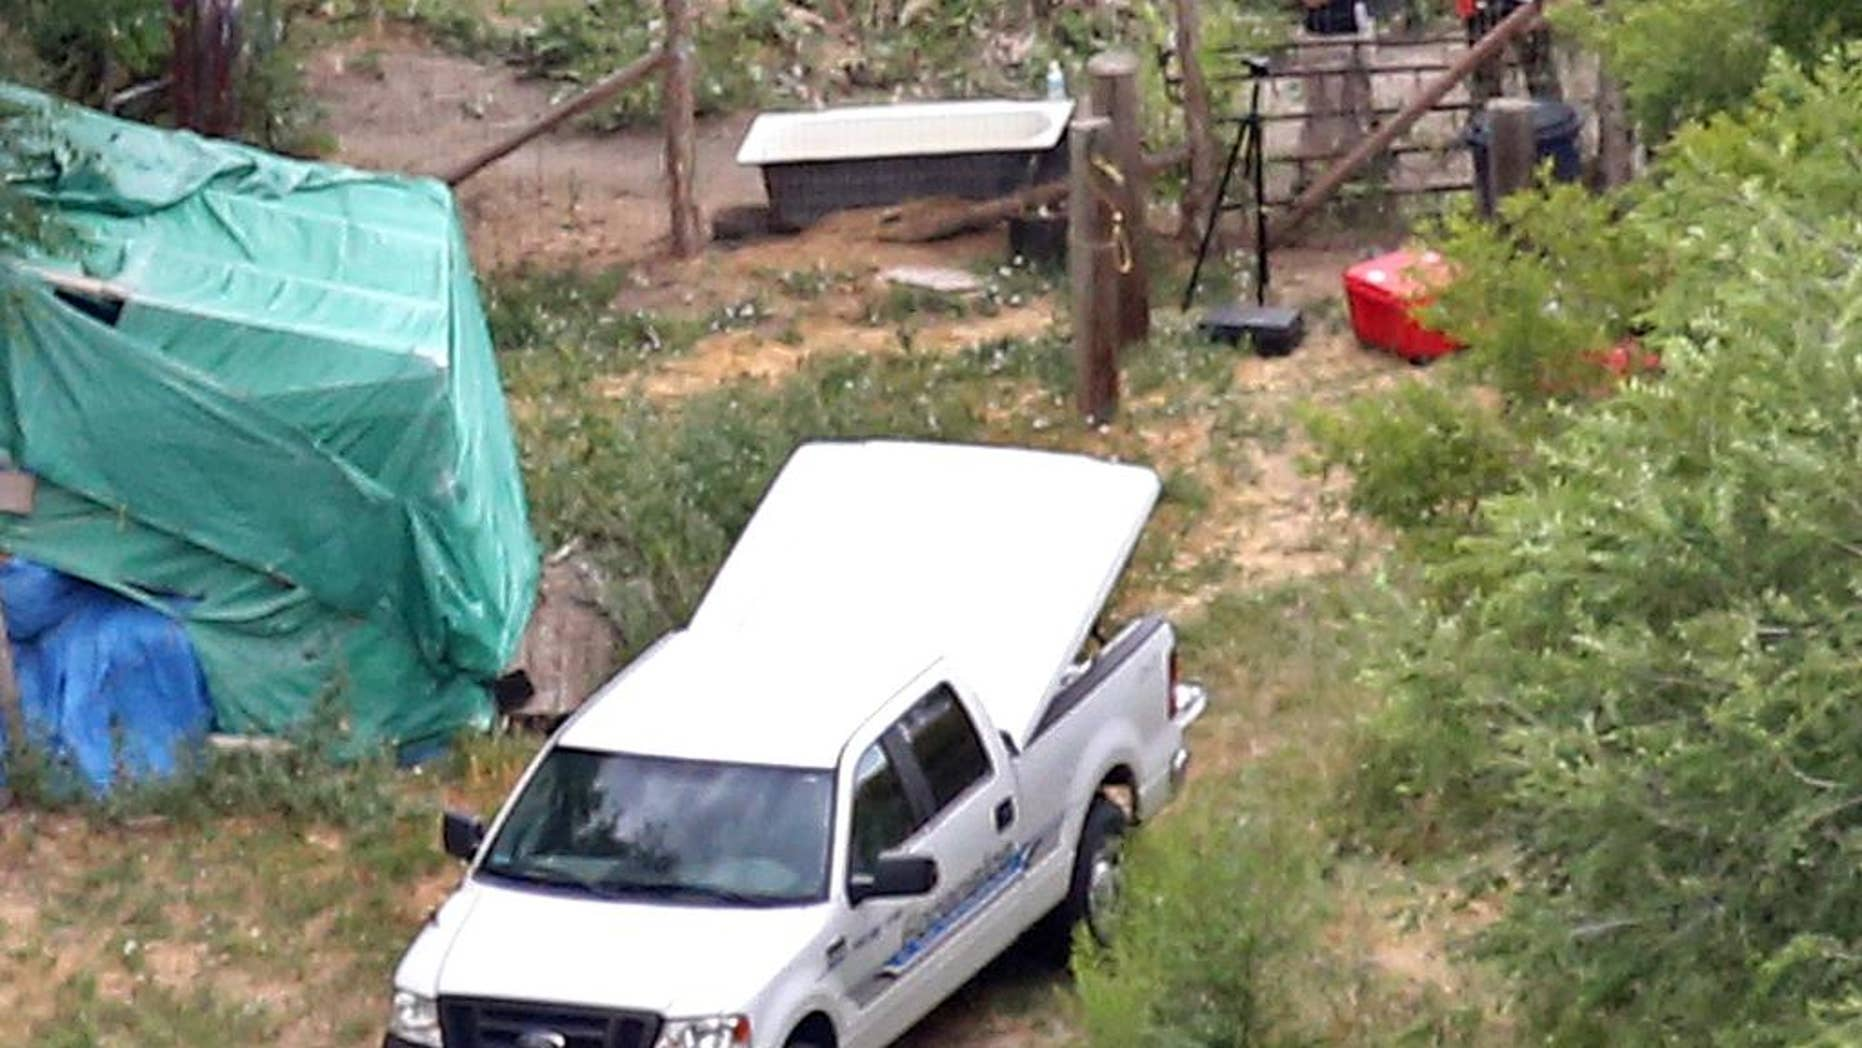 In this aerial photo, investigators look for evidence in the field where the body of a 12-year-old girl found on Friday , July 17, 2015, in West Valley City, Utah.  West Valley City Police Chief Lee Russo said Friday the girl left her house about midnight with someone her parents didn't know. Police believe she was killed in an altercation in the field near where her body was found in the suburb of Salt Lake City.(Tom Smart/The Deseret News via AP)  SALT LAKE TRIBUNE OUT; MAGS OUT; MANDATORY CREDIT